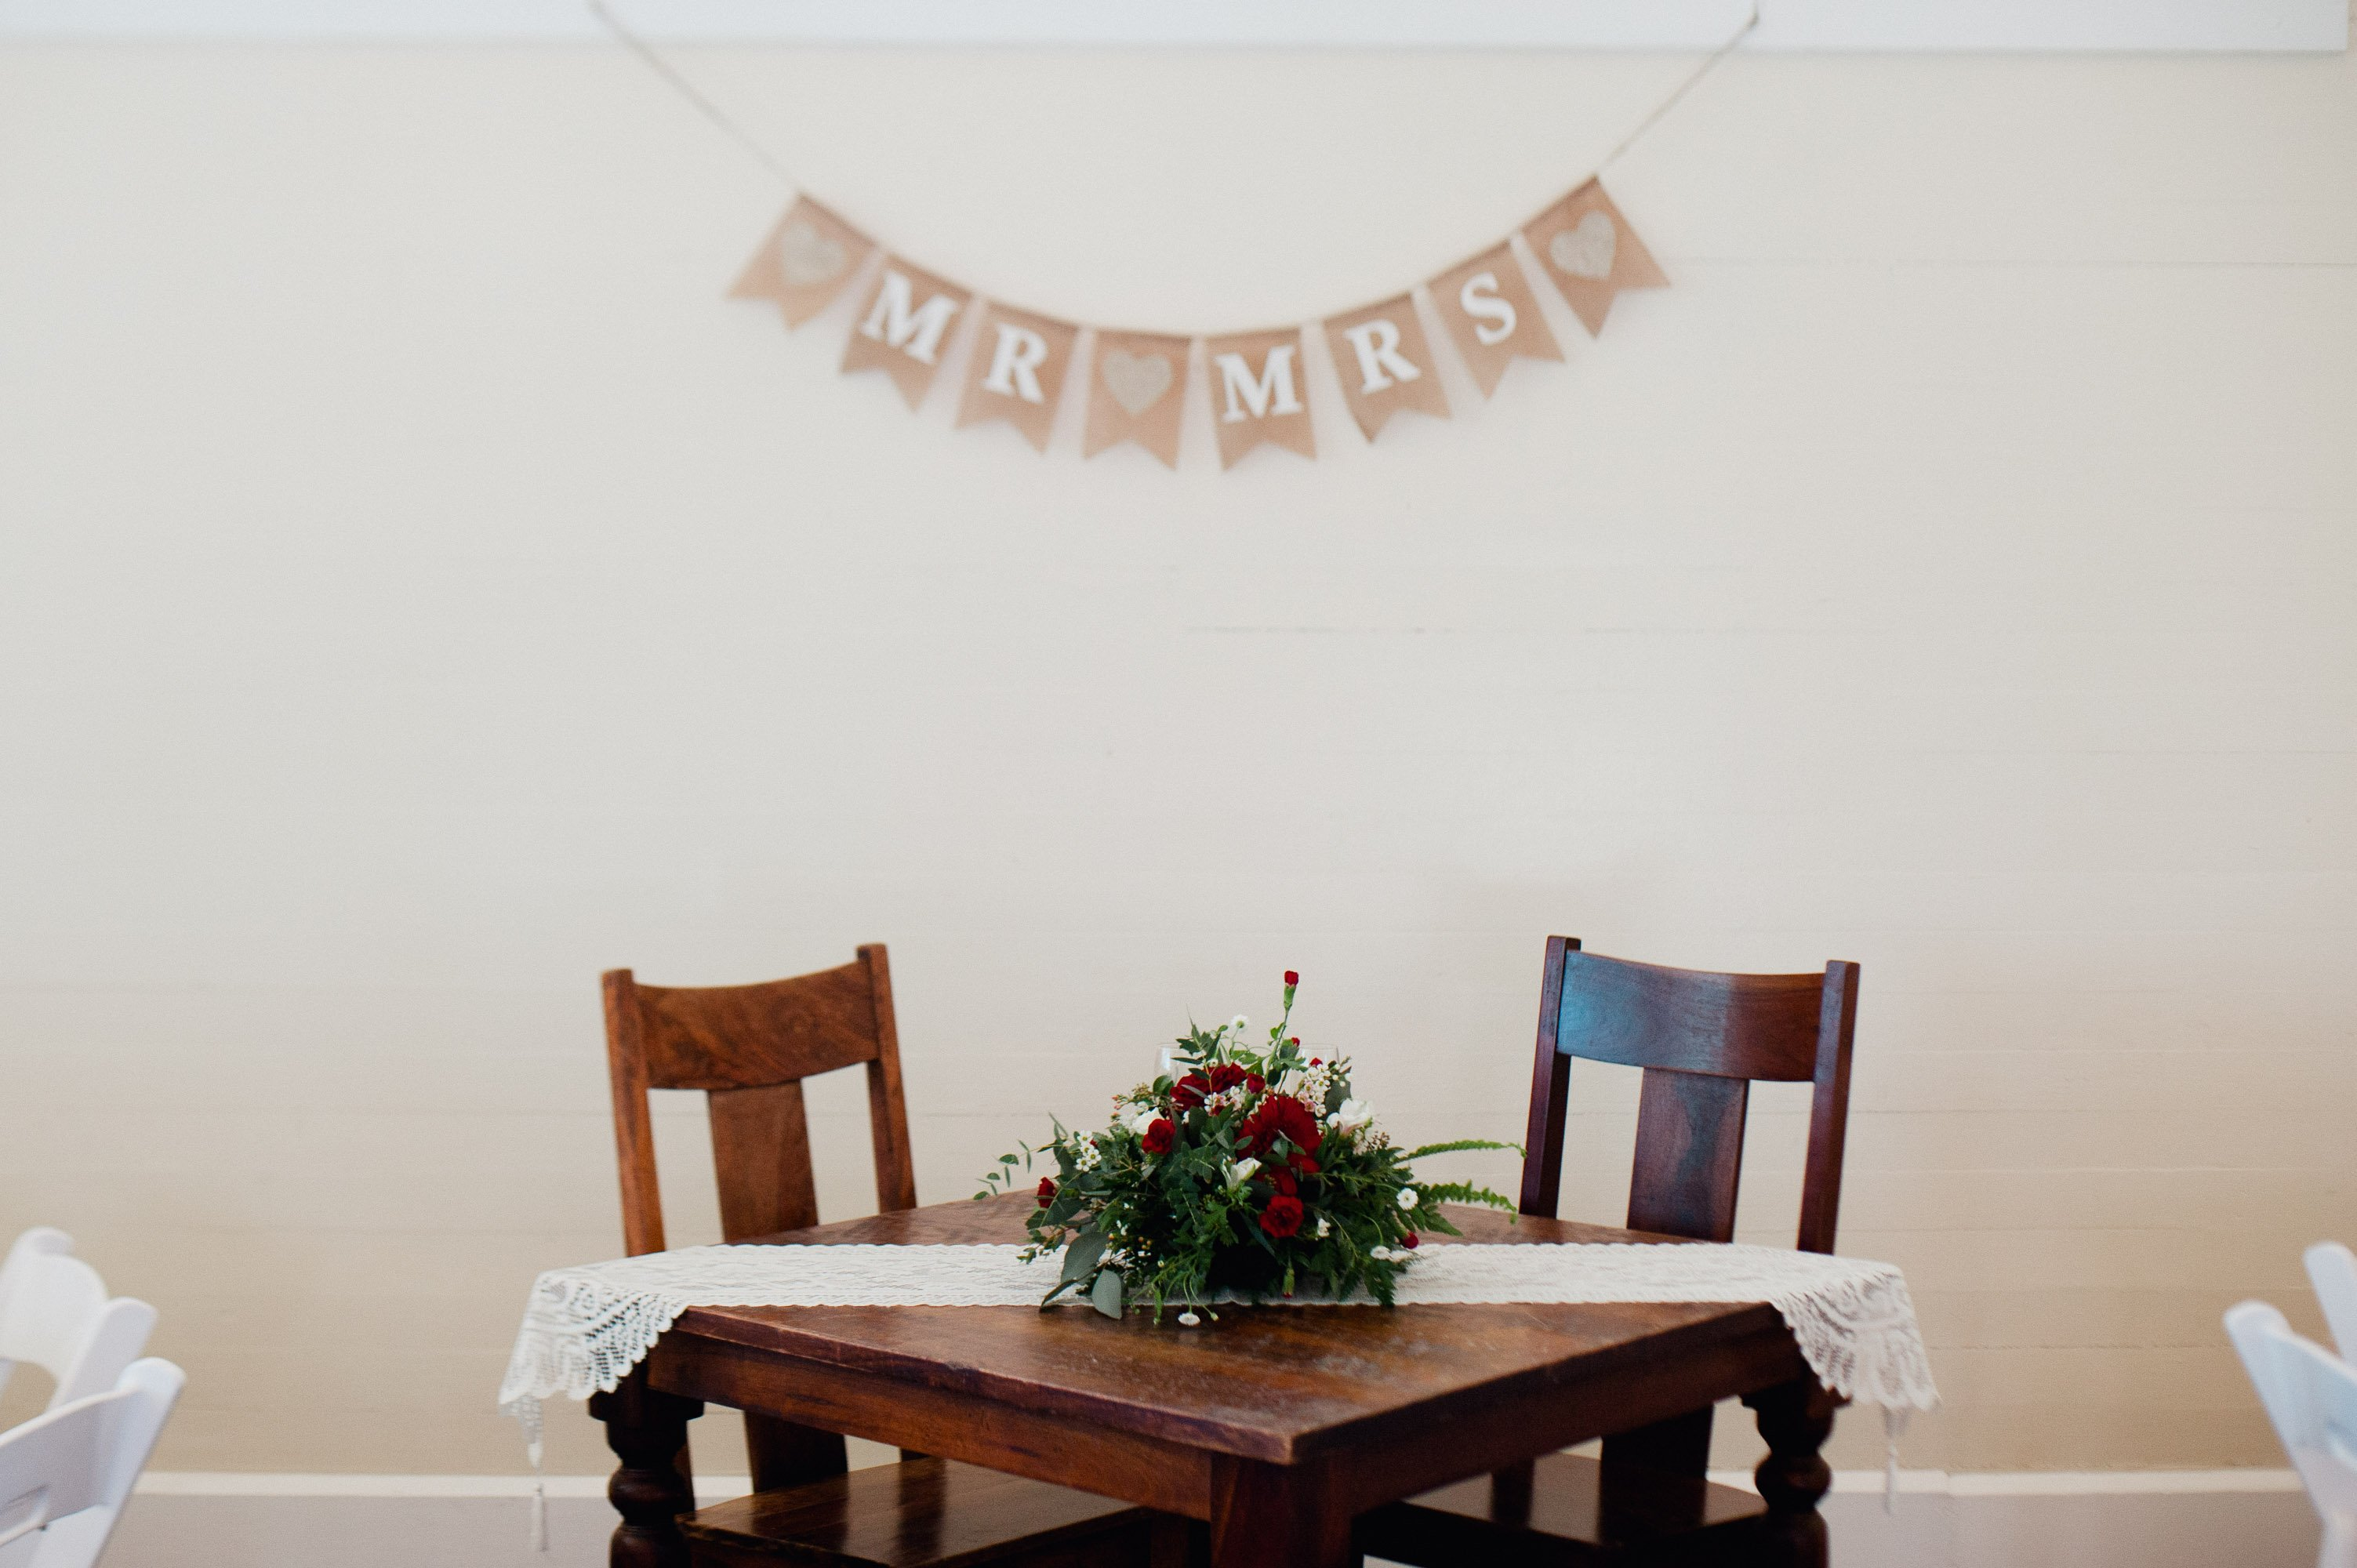 intimate winter wedding details at a sweetheart table